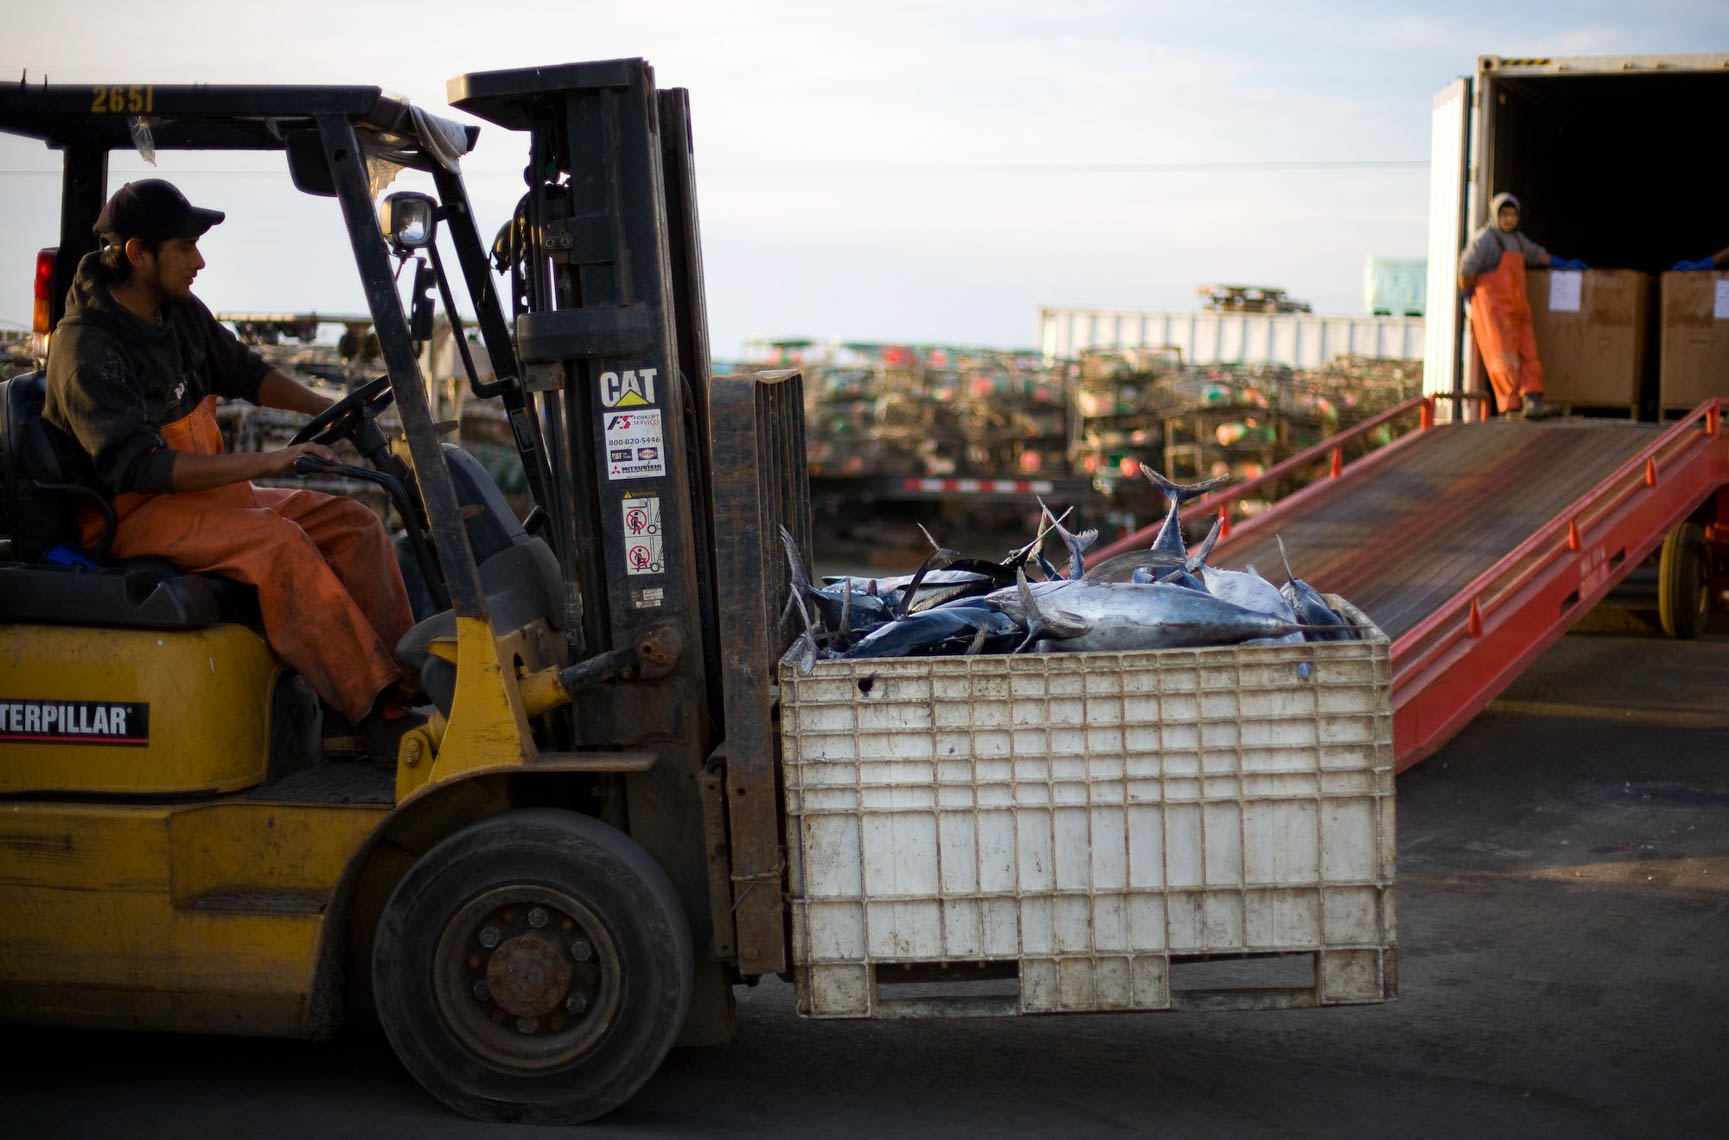 A Forklift Transport a Bin of Albacore Tuna